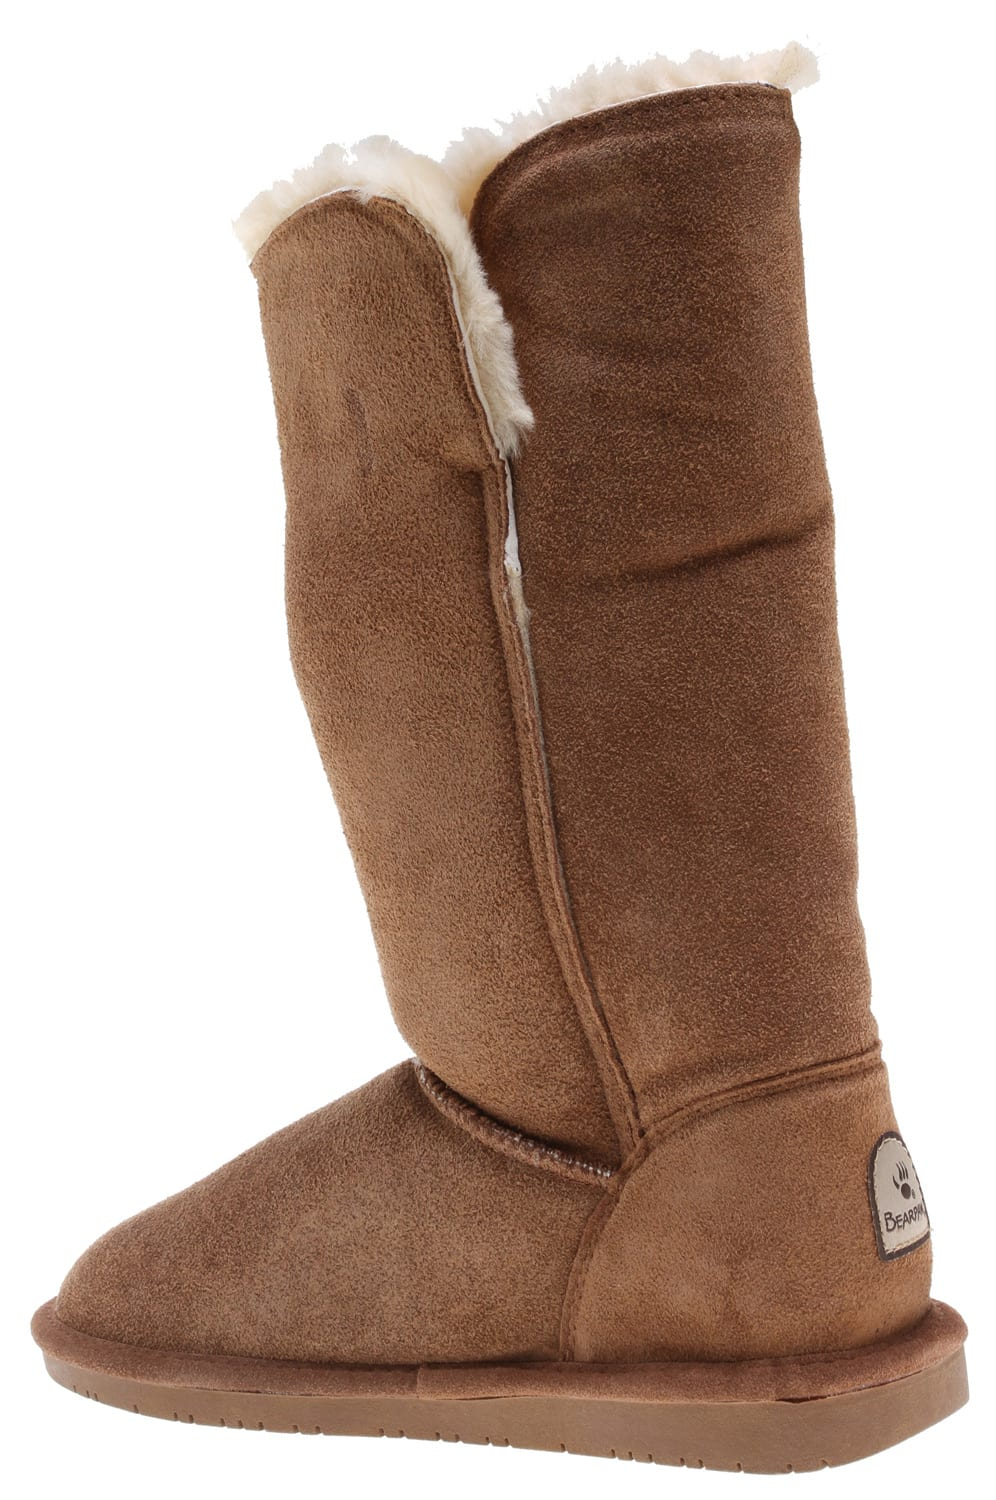 On Sale Bearpaw Lauren Boots - Womens up to 45% off